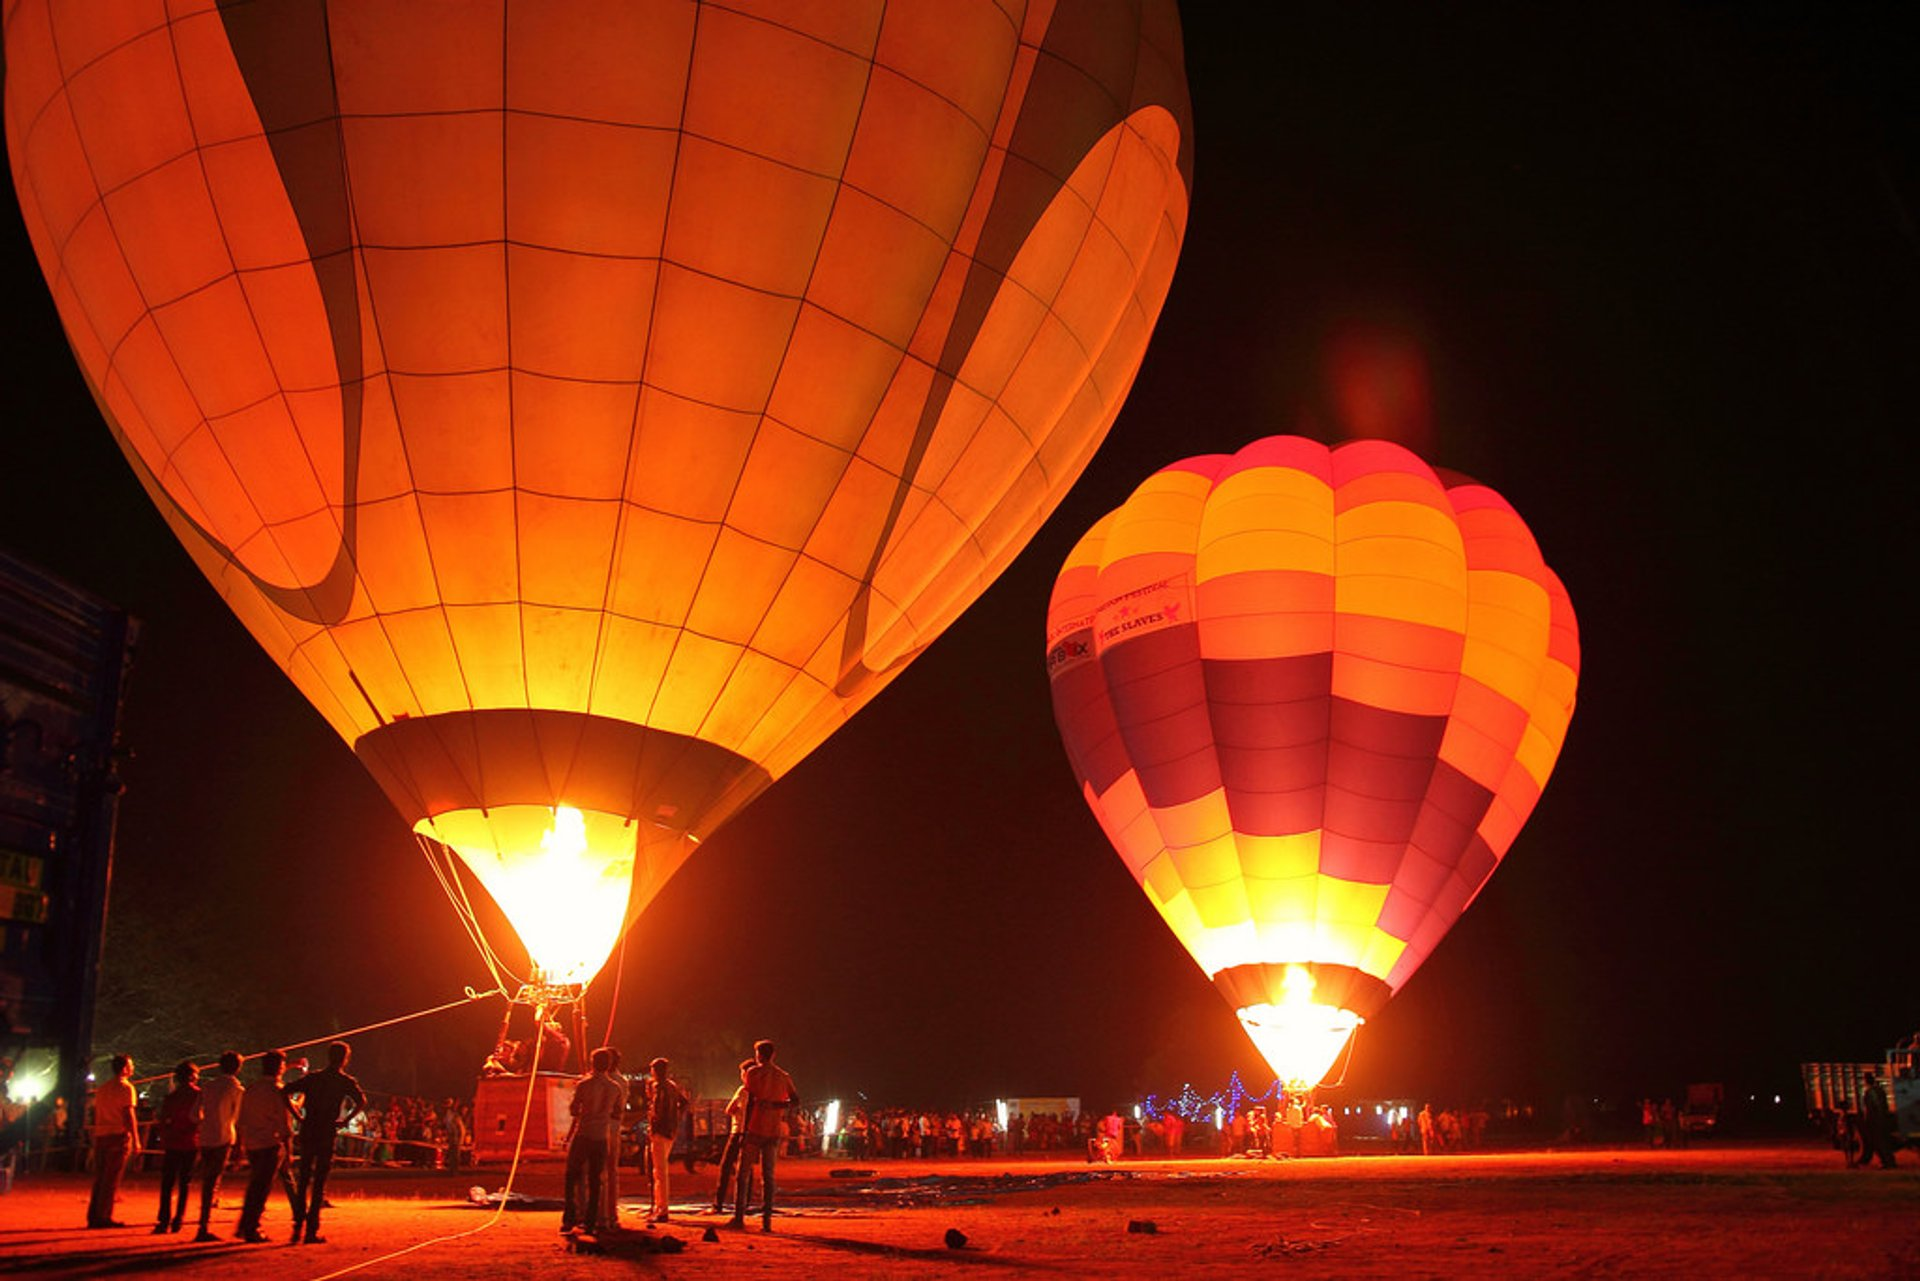 Hot Air Ballooning in India - Best Season 2019